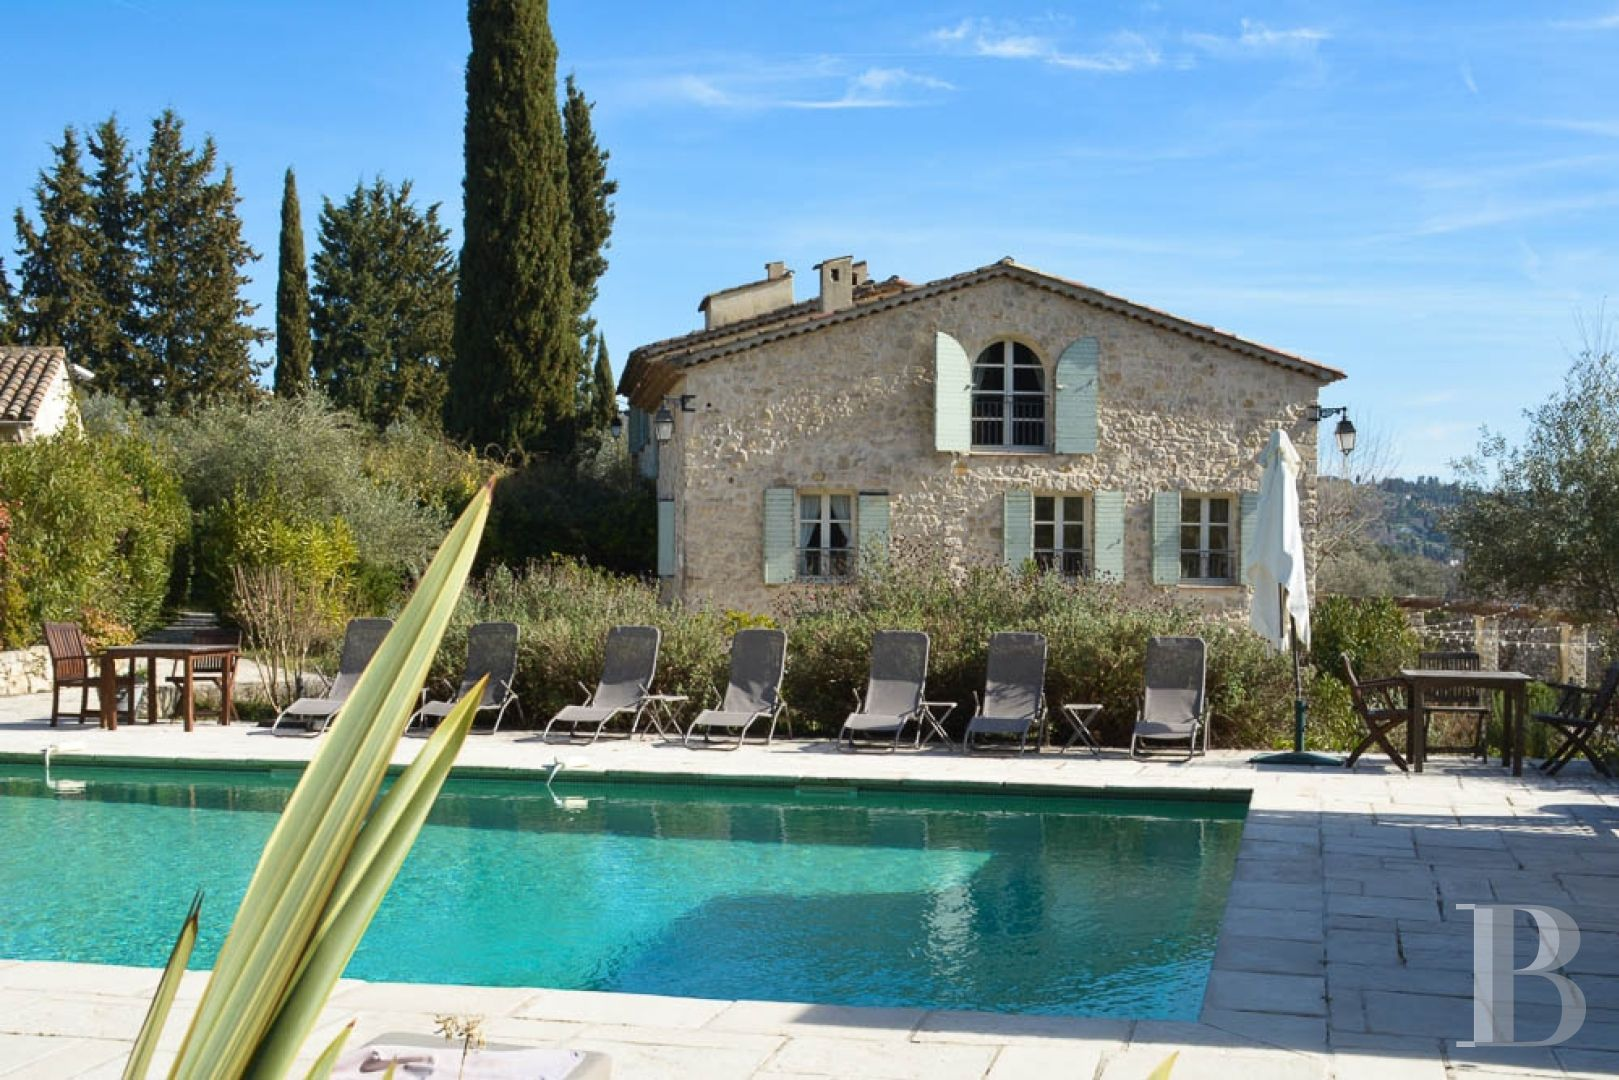 property for sale France provence cote dazur residences traditional - 8 zoom